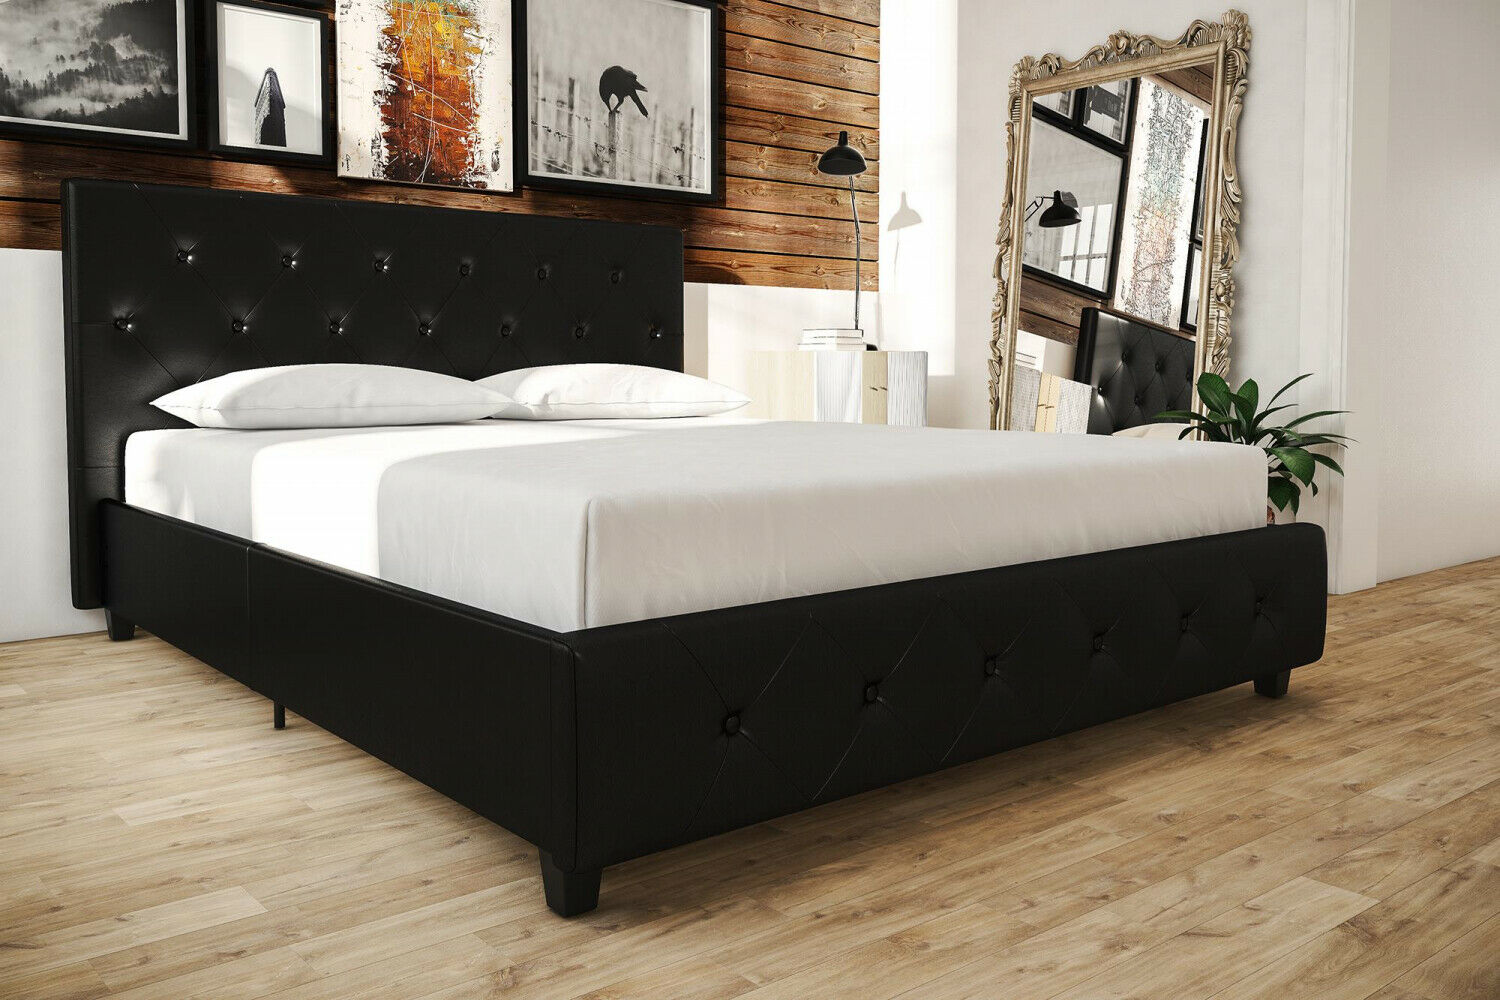 Image of: Dhp Full Size Upholstered Platform Bed Storage Drawers Black Faux Leather New For Sale Online